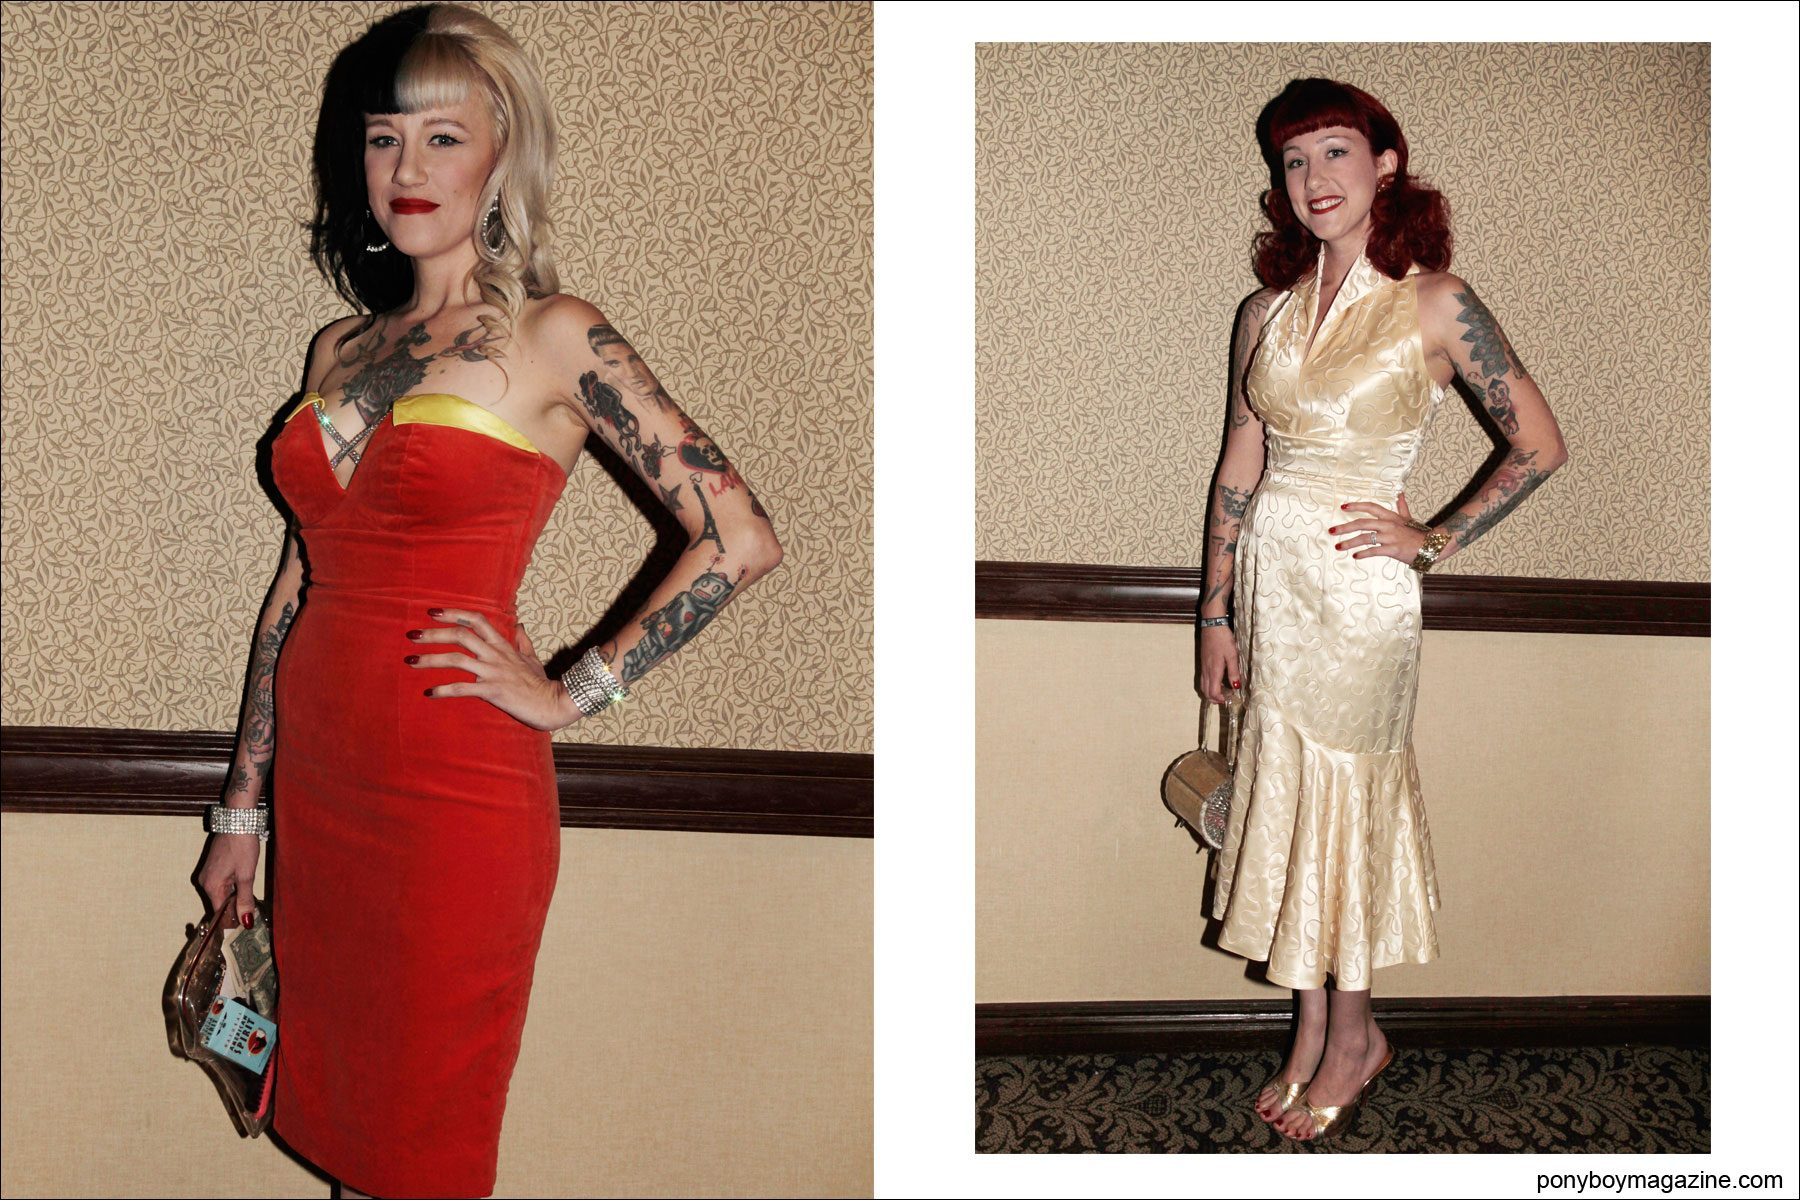 1950 S Women Tail Dresses Photographed At Rockabilly Weekender Viva Las Vegas 17 By Alexander Thompson For